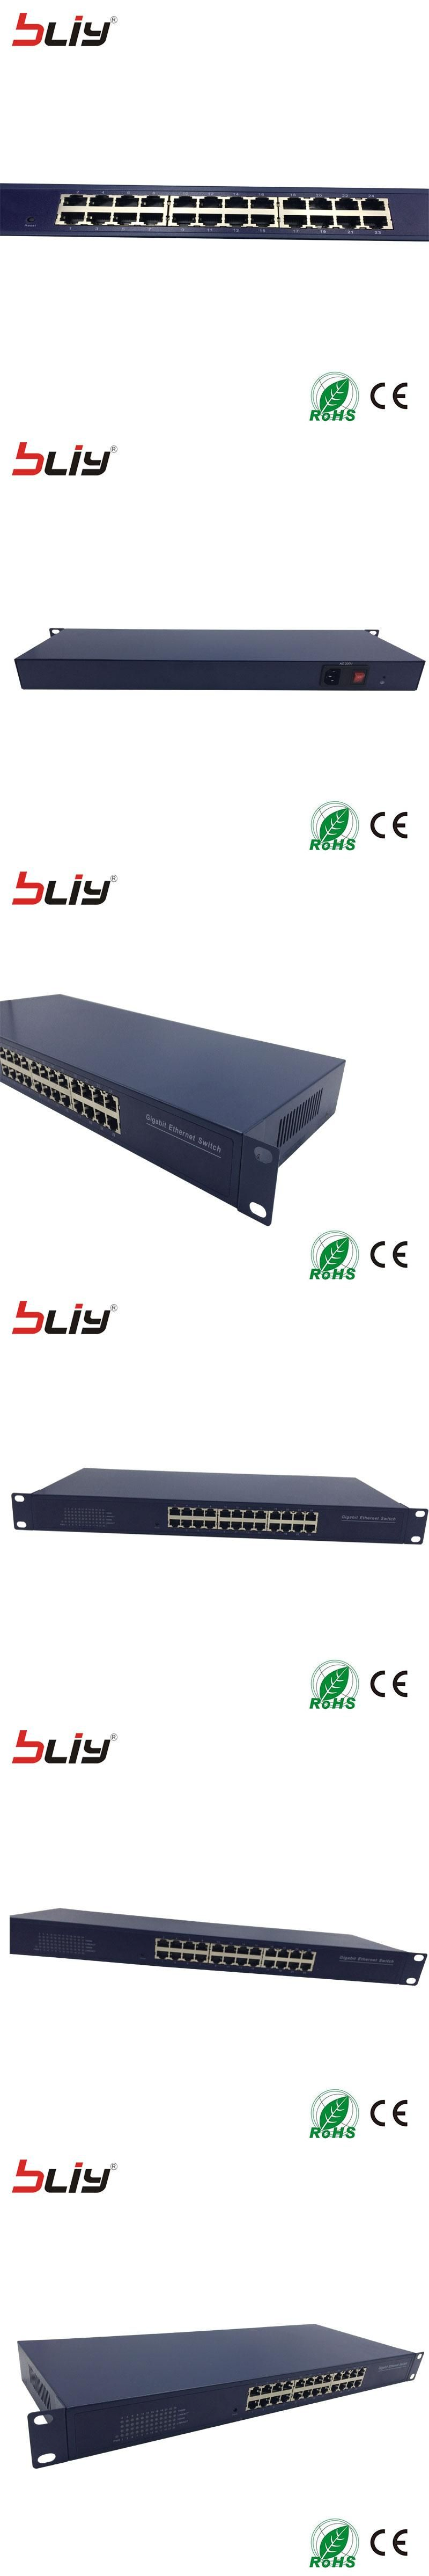 24 Port Switch Hub Gigabit Ethernet Rj45 Utp Unmanaged Layer 4 Way Box 2 Etherent Switcher Price For 19 Chassis